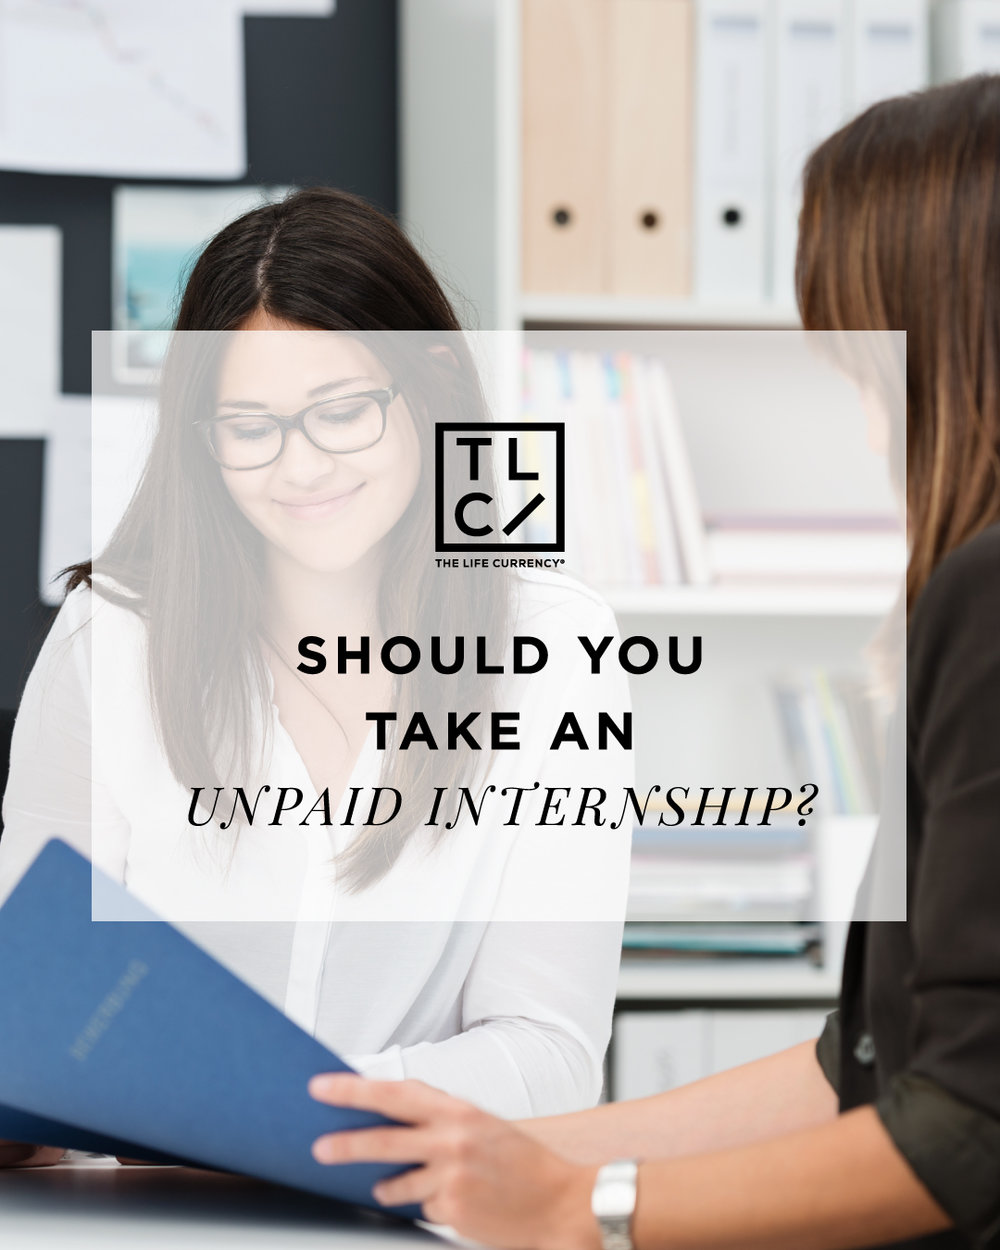 Should You Take An Unpaid Internship?